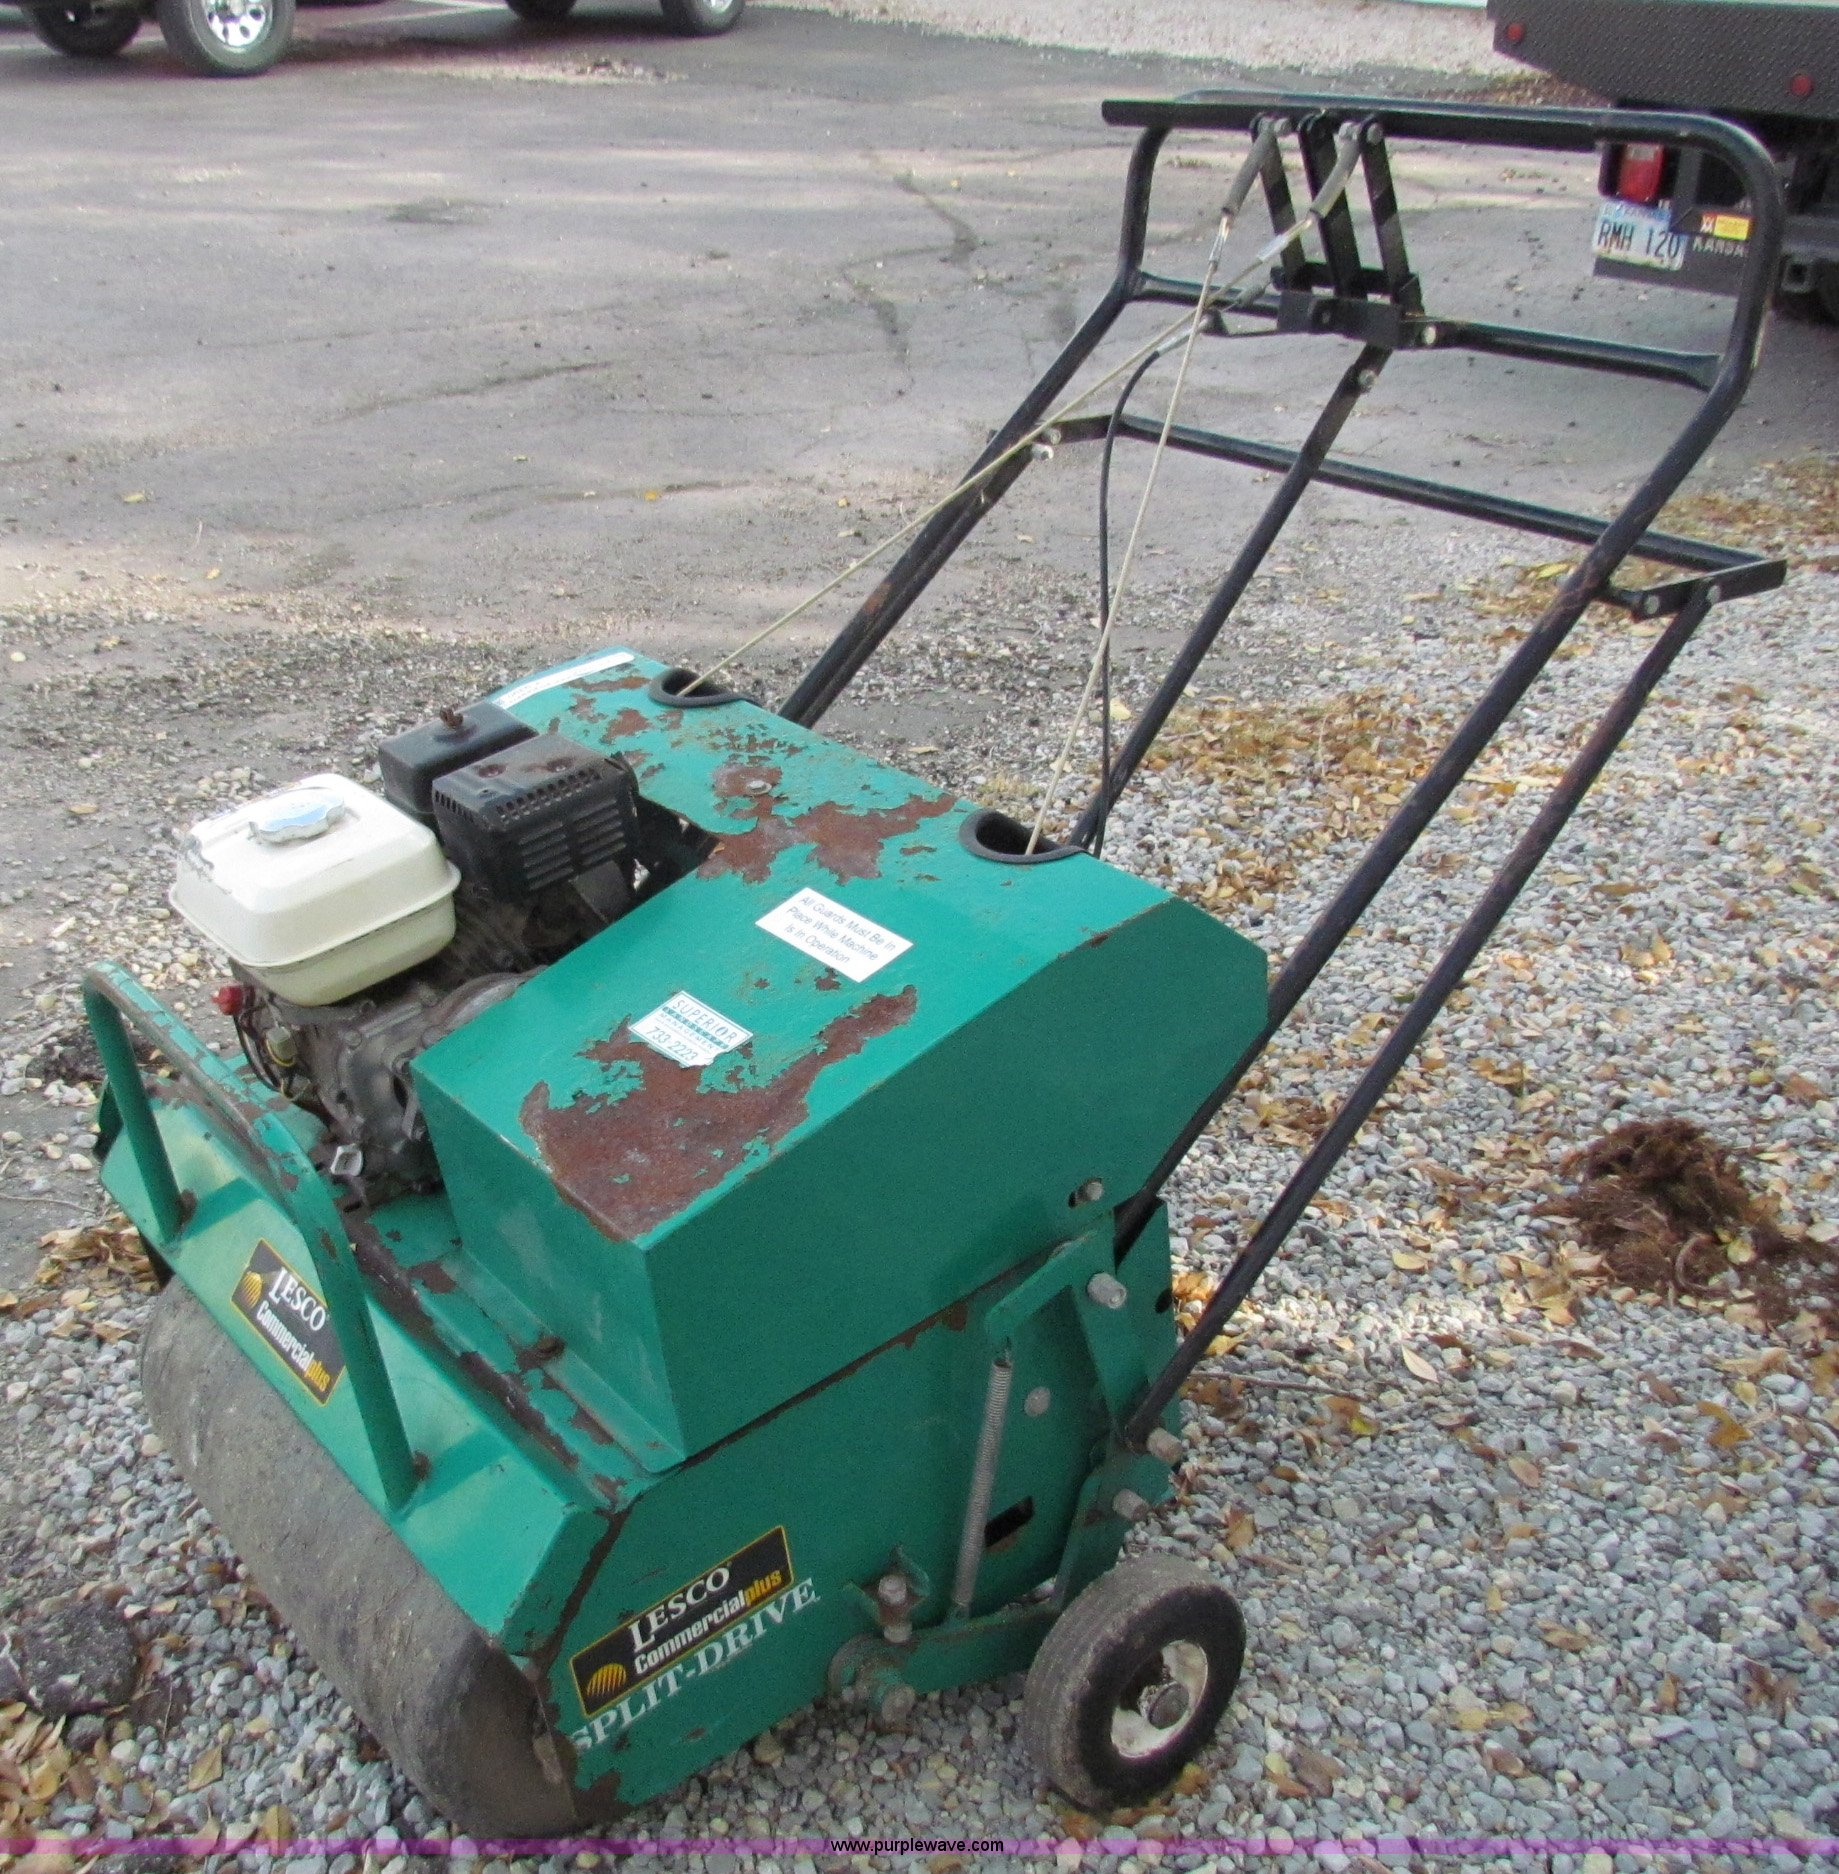 lesco commercial plus aerator item v9390 sold wednesday rh purplewave com Commercial Walk Behind Mowers LESCO Commercial Mowers Parts Manual